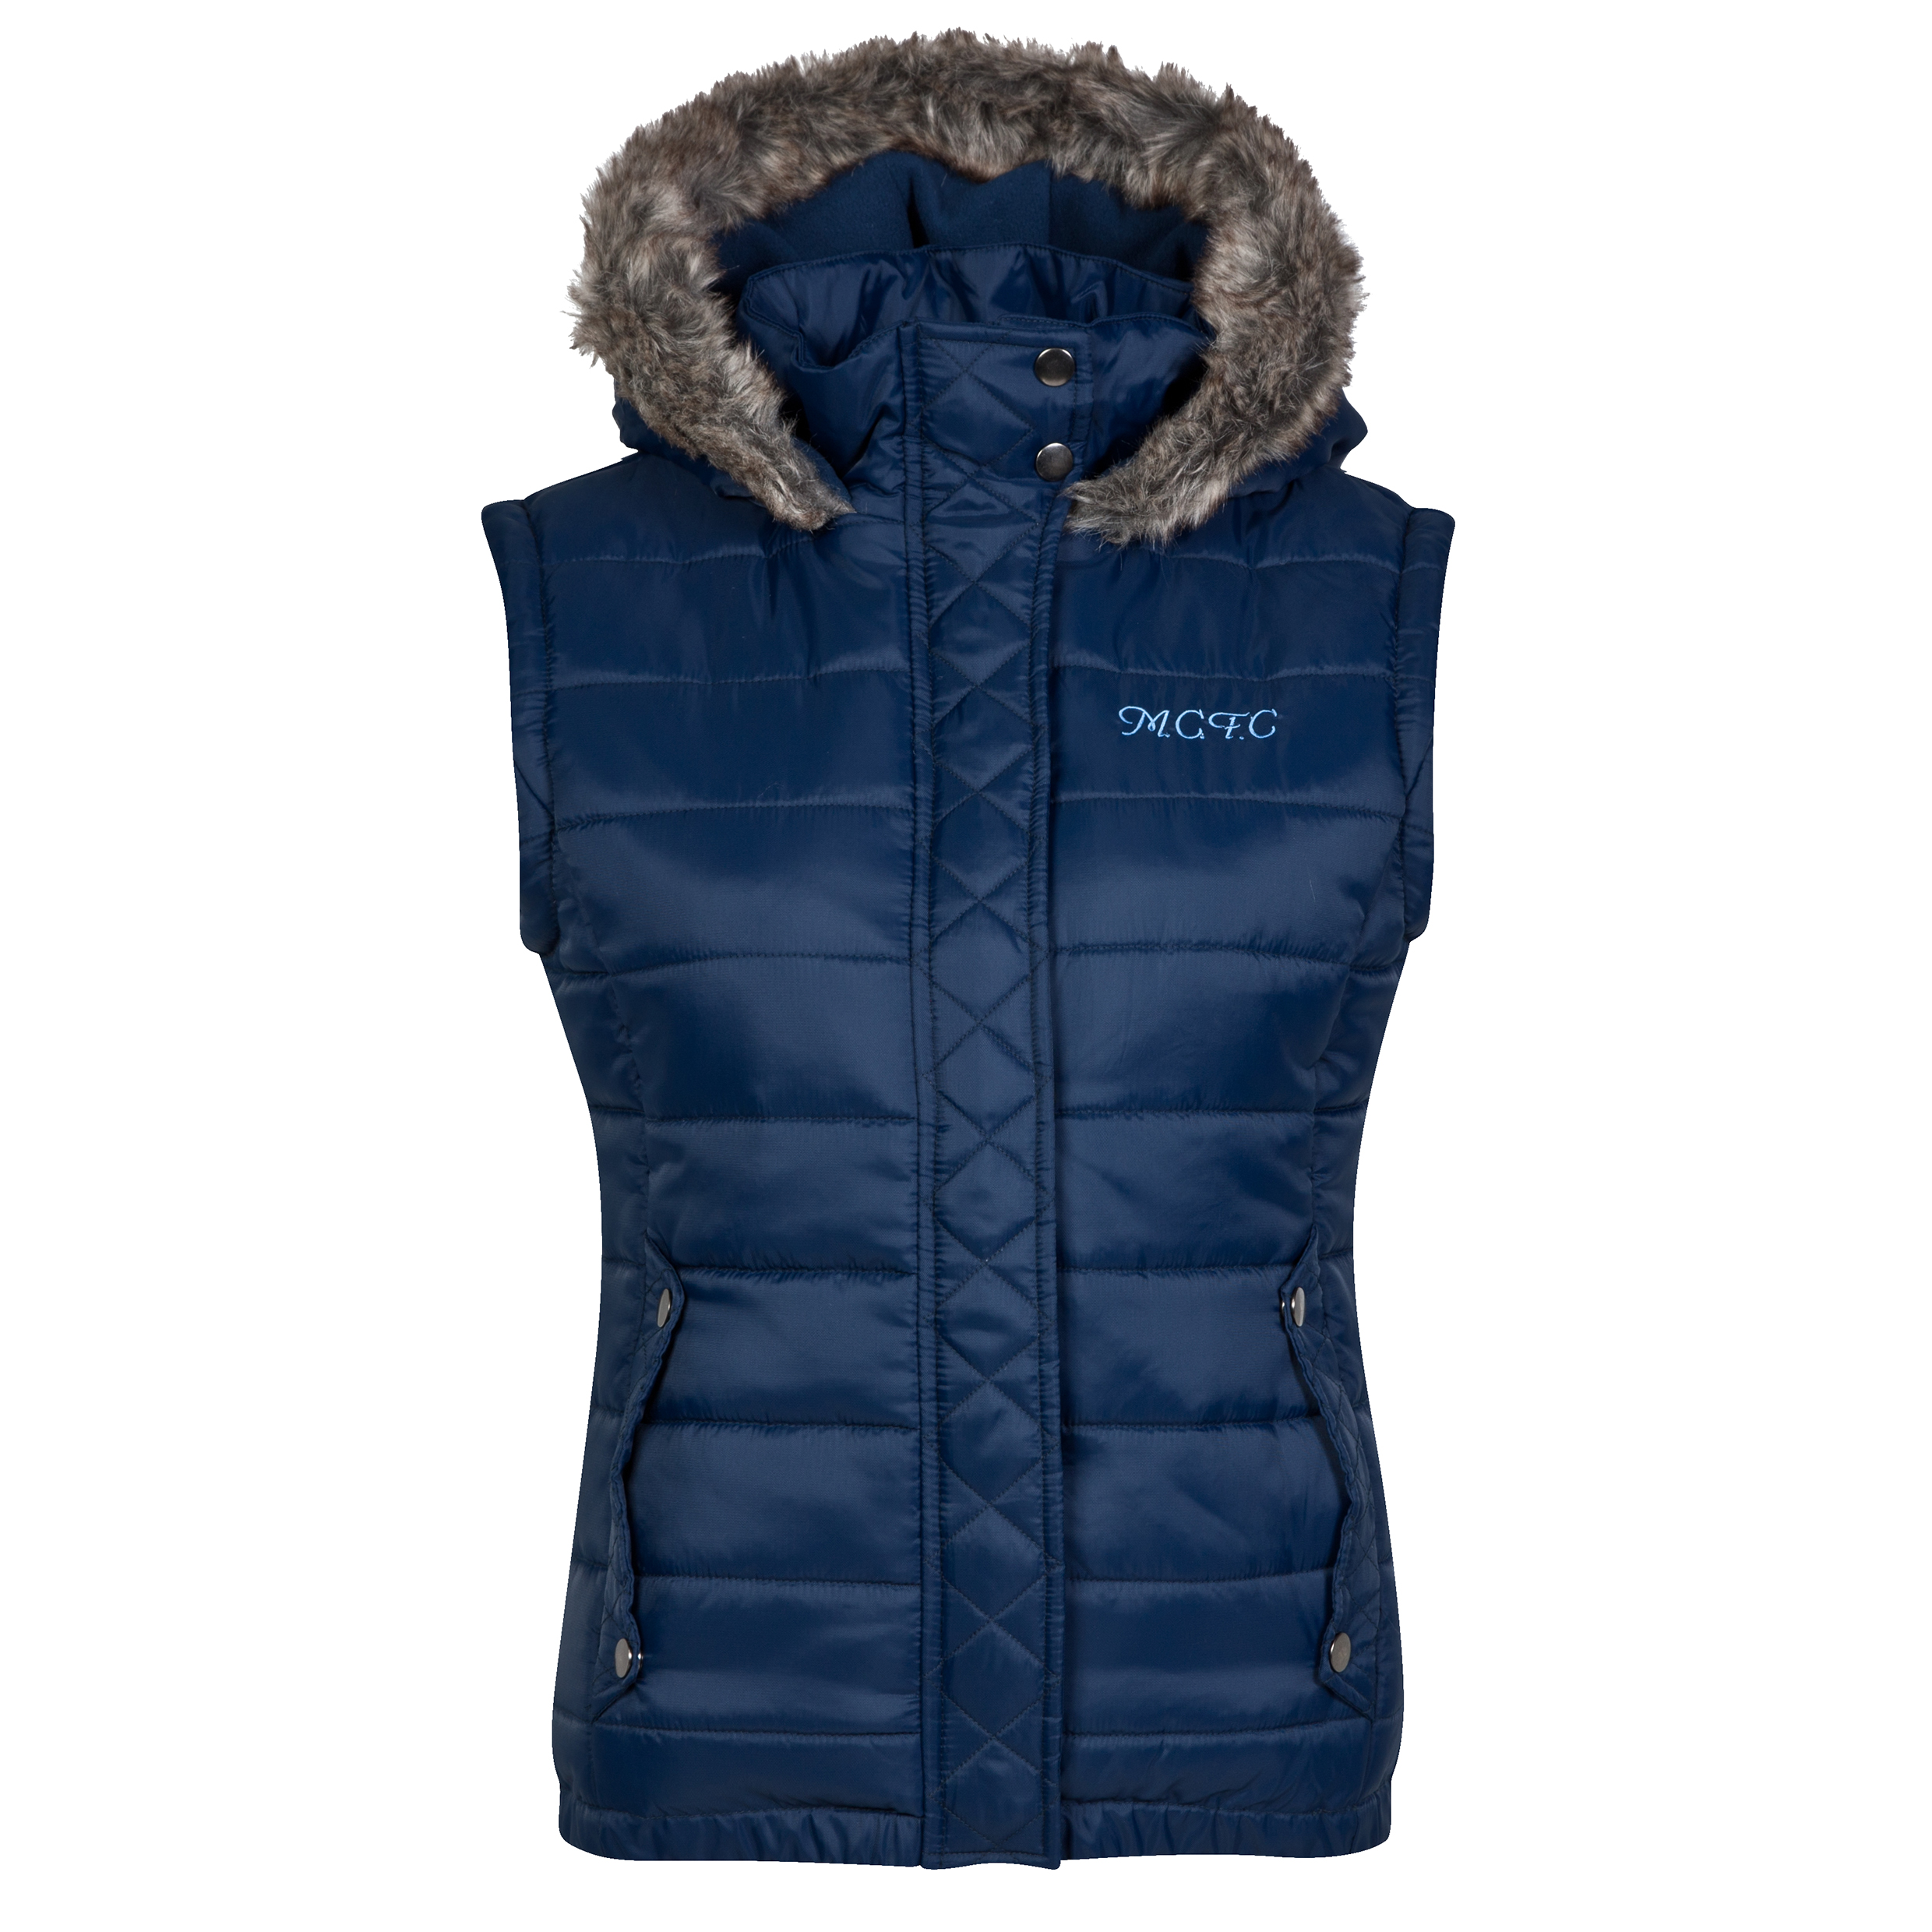 Manchester City Gilet - Navy - Womens